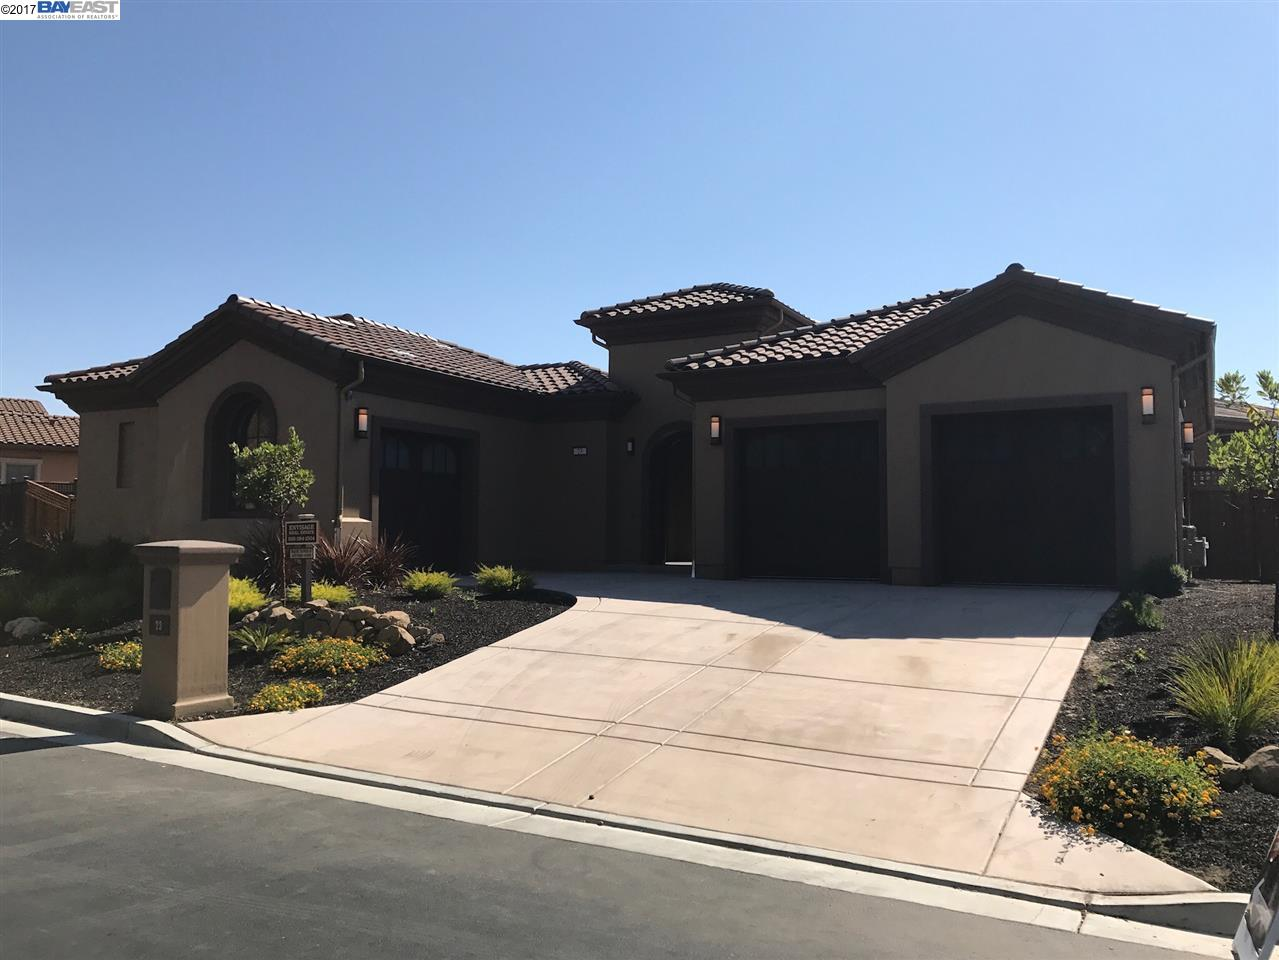 Single Family Home for Sale at 23 Stonebrae Road Hayward, California 94542 United States